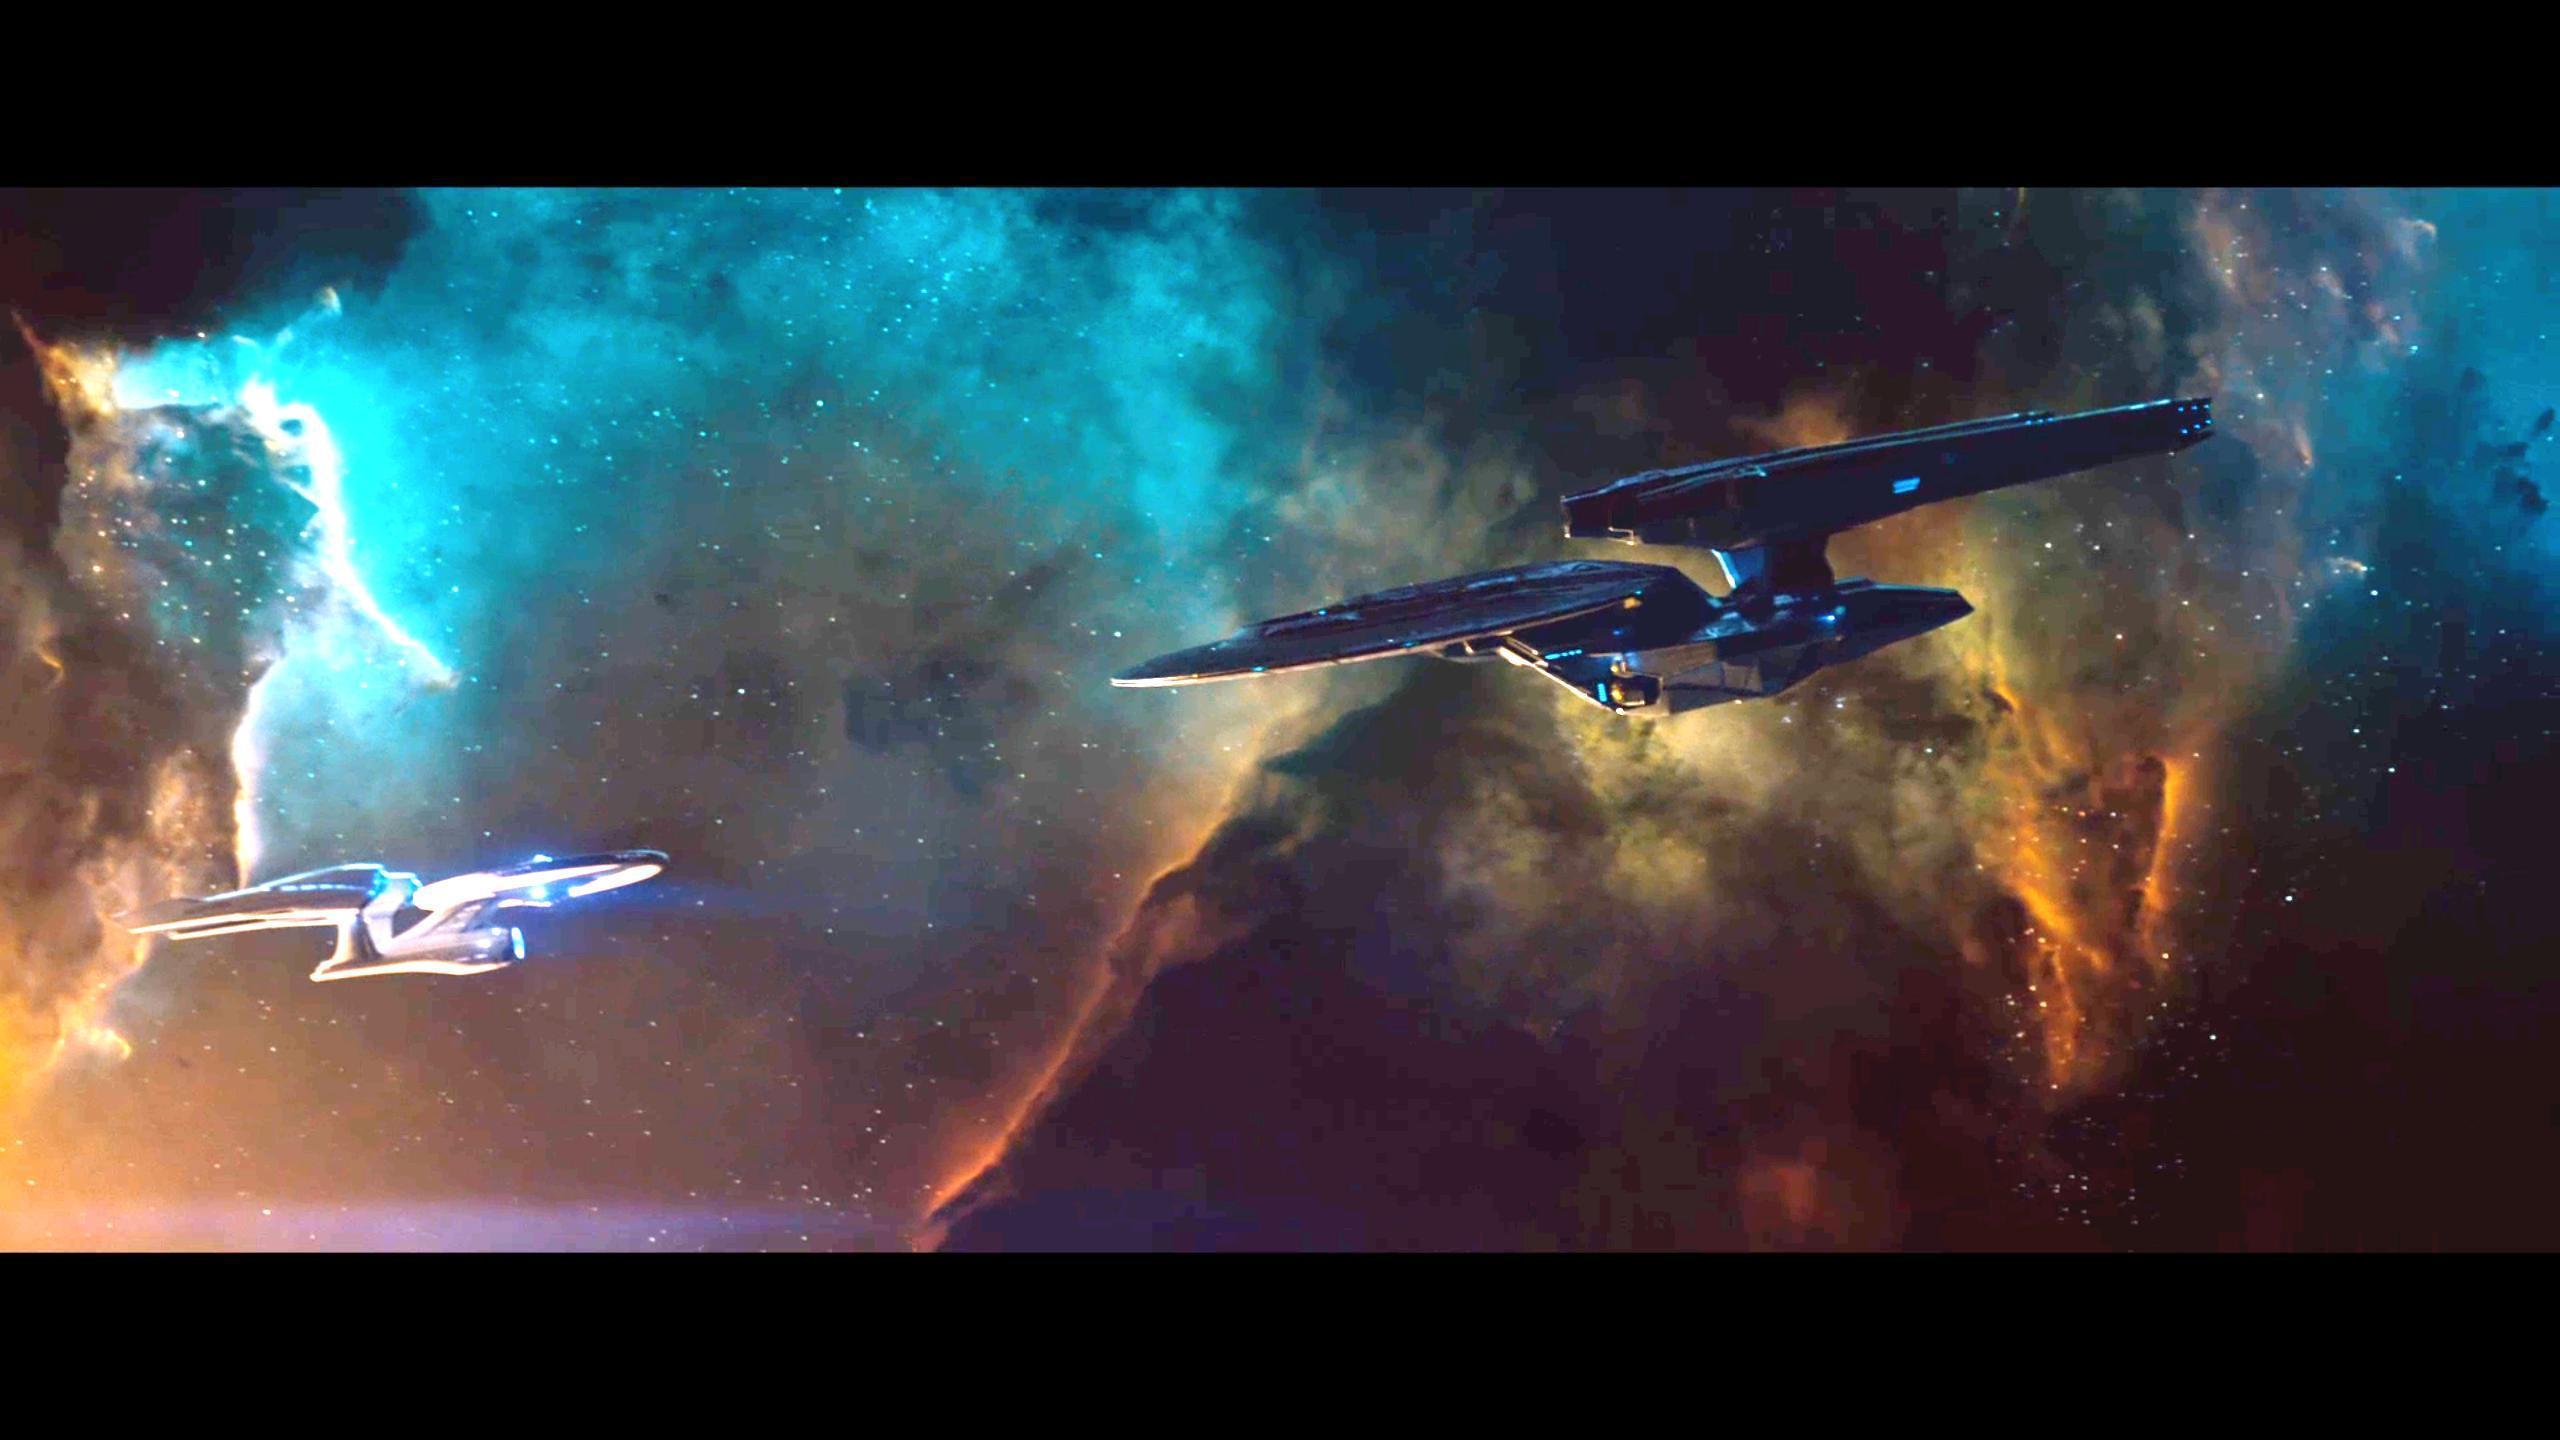 Star Trek Into Darkness Wallpapers: Star Trek Wallpapers 1080p